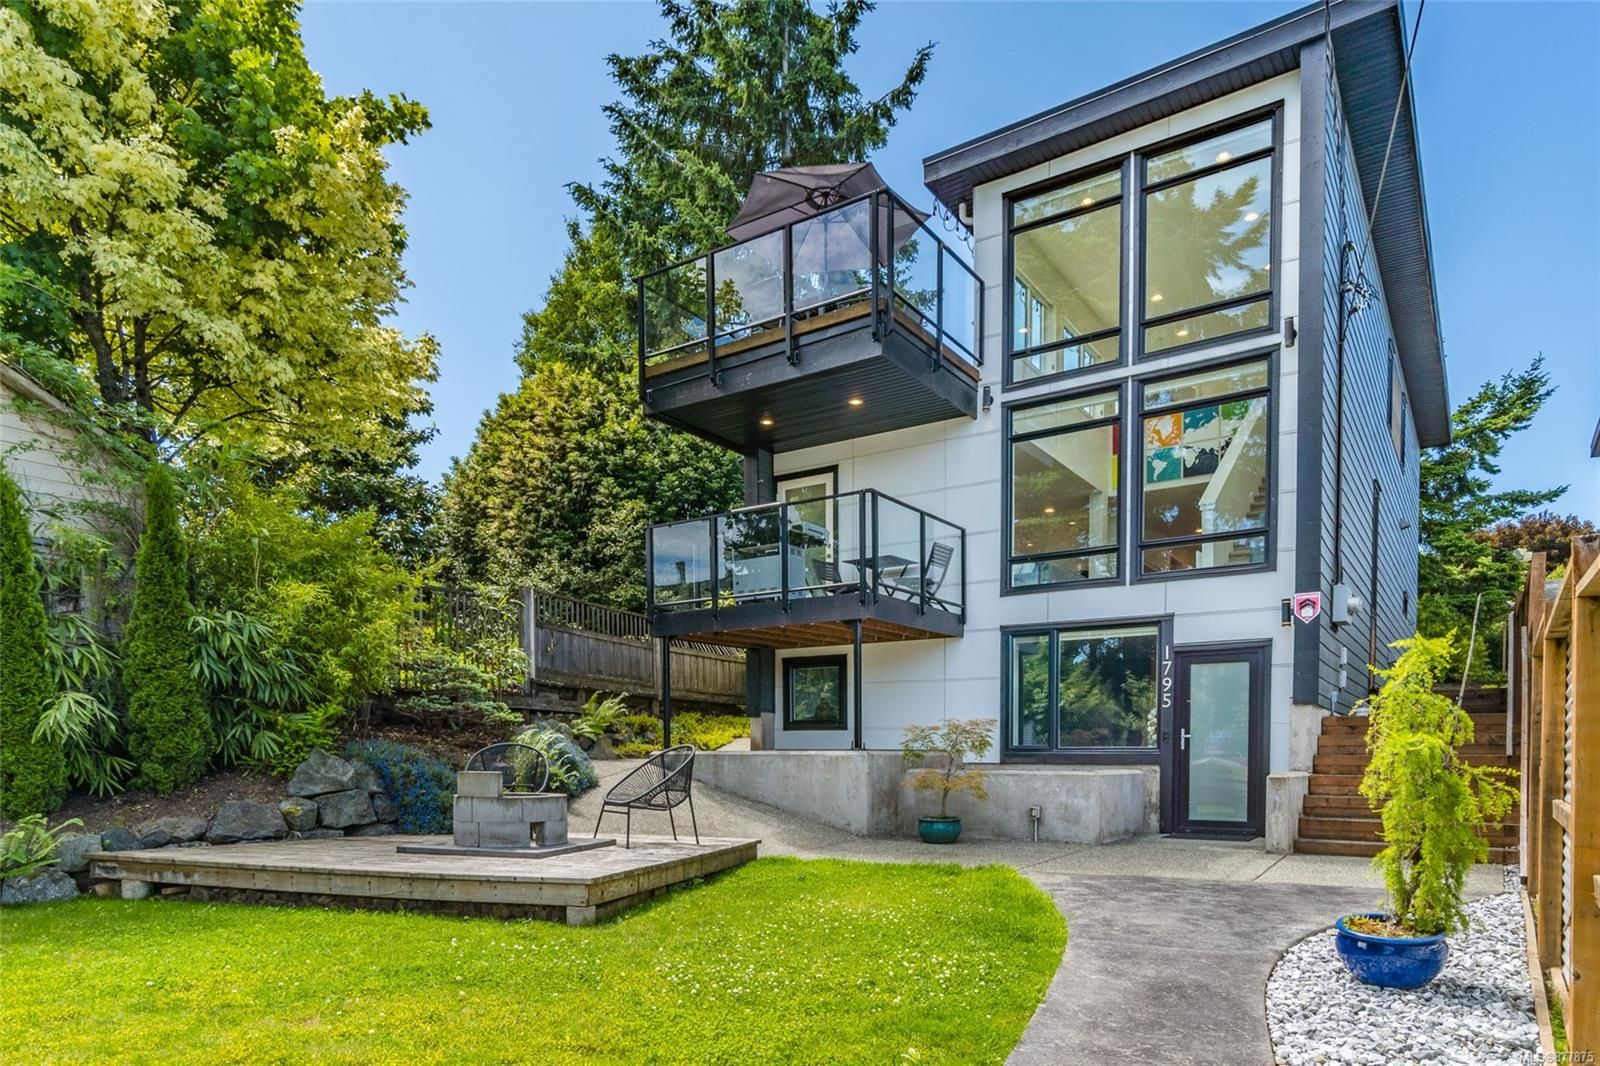 Main Photo: 1795 Stewart Ave in : Na Brechin Hill House for sale (Nanaimo)  : MLS®# 877875